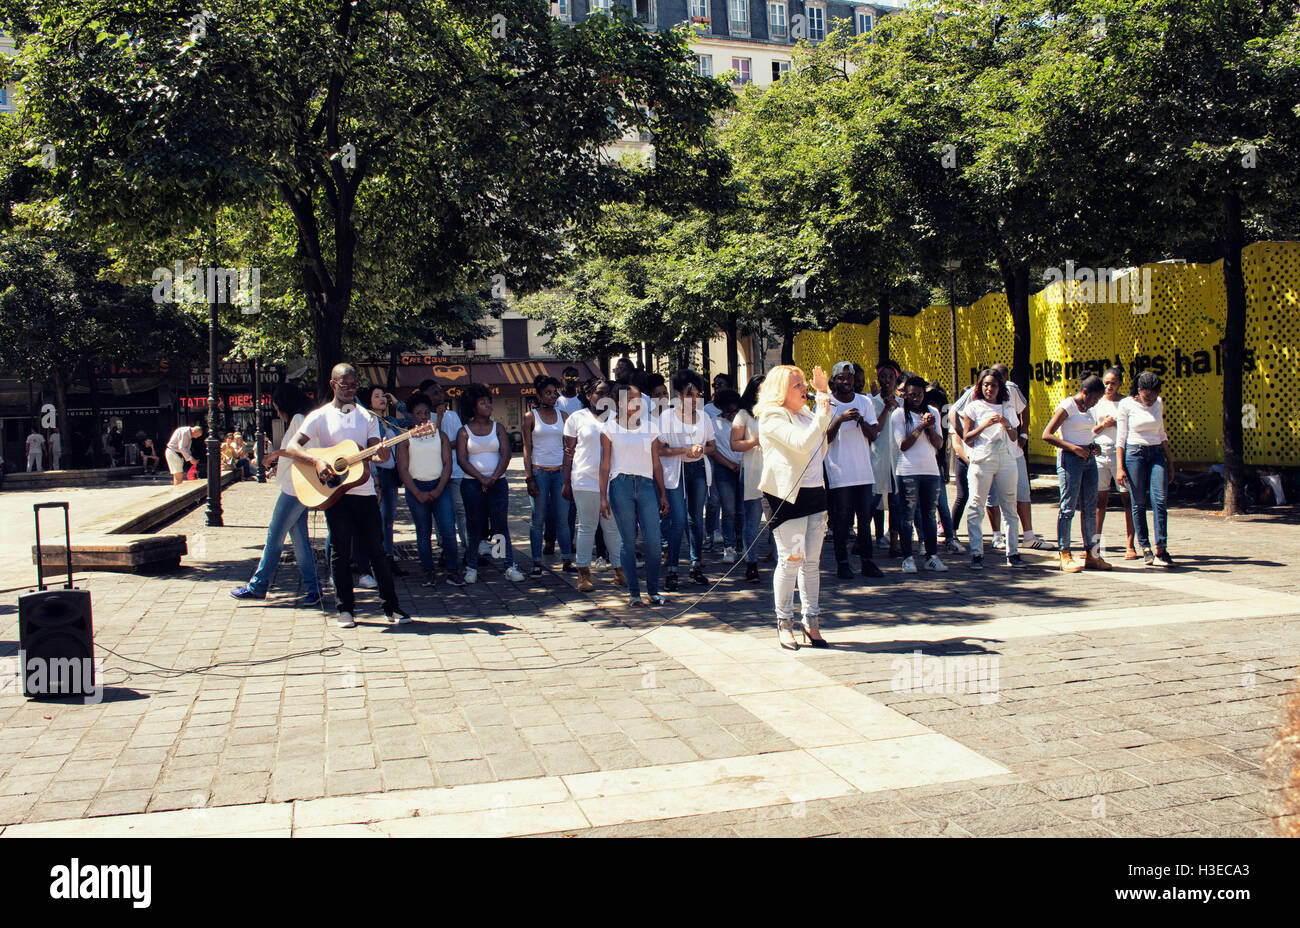 Middle age woman sings with a chorus of young African French teenagers near Les Halles station in Paris. - Stock Image